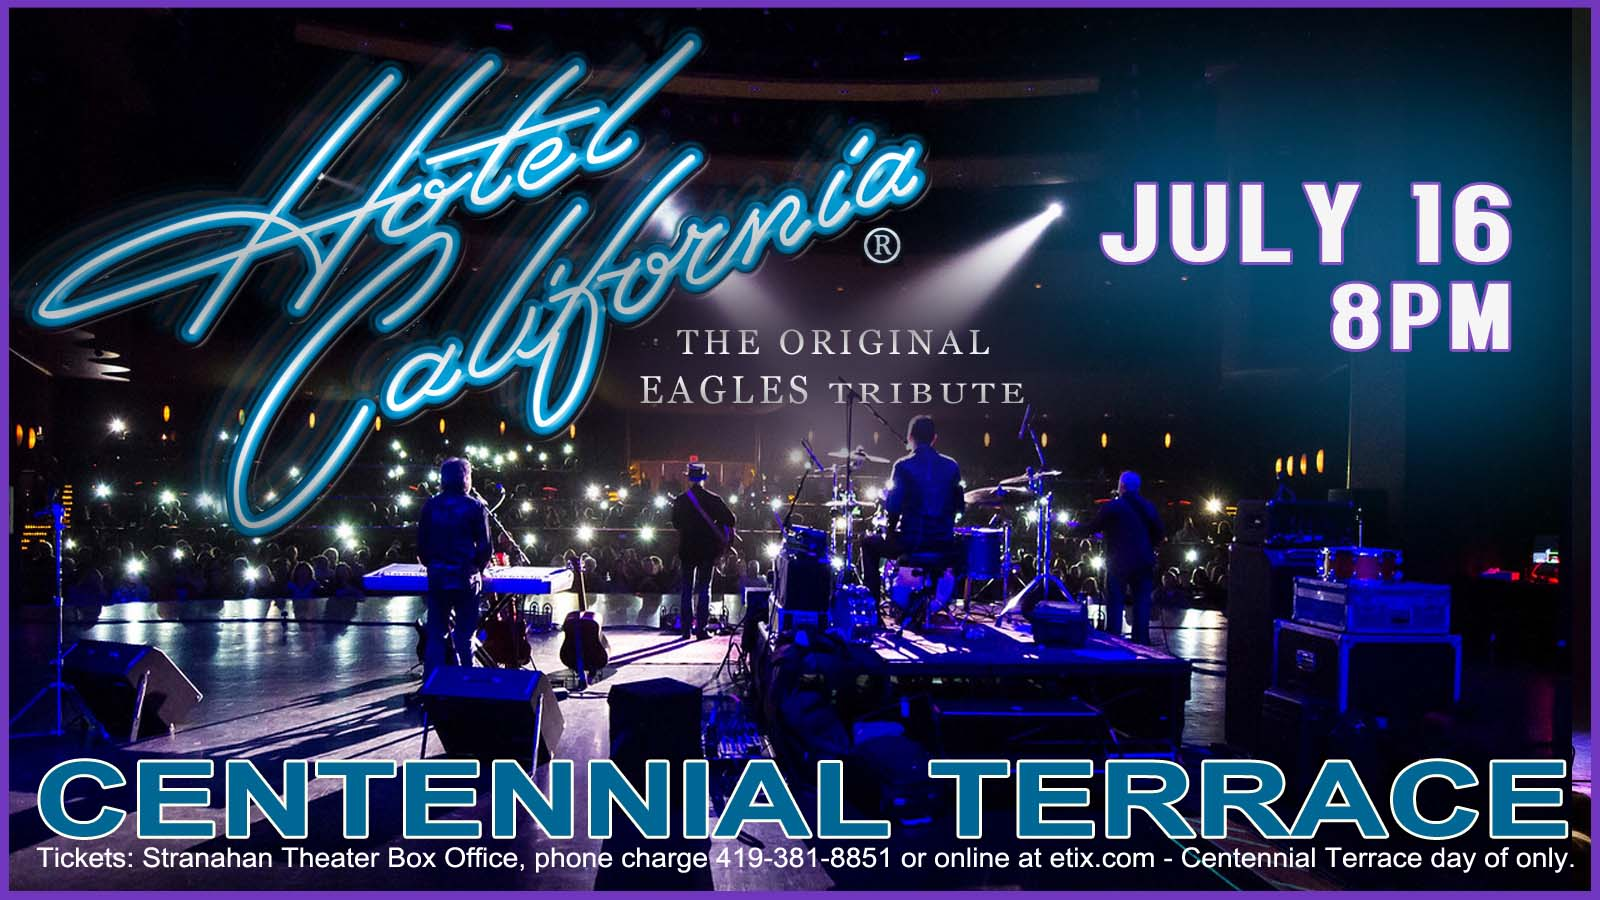 Hotel California – Centennial Terrace – July 16th